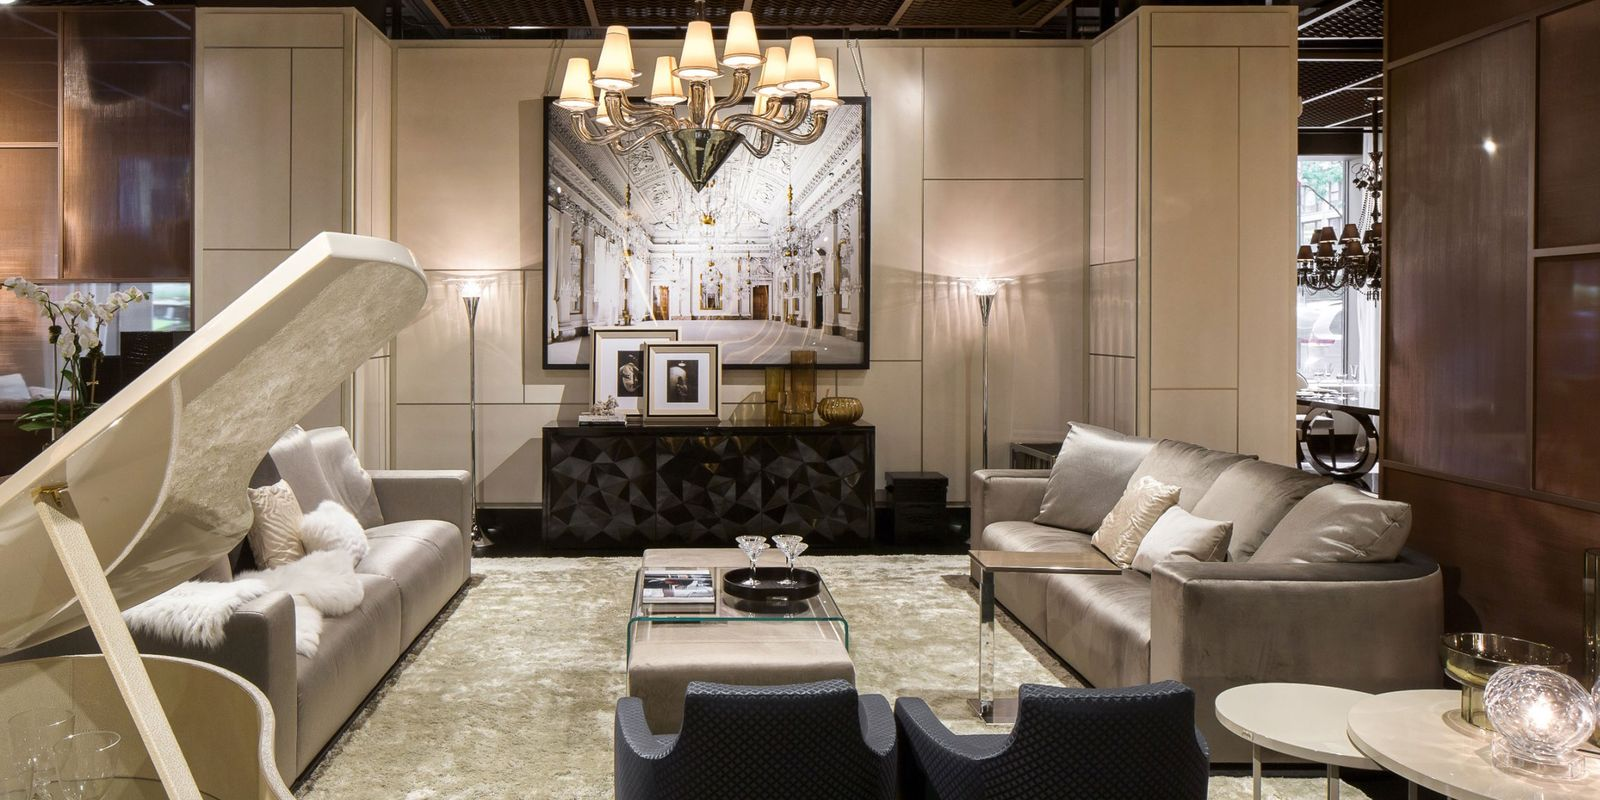 Luxury Living Opens New York Showroom And